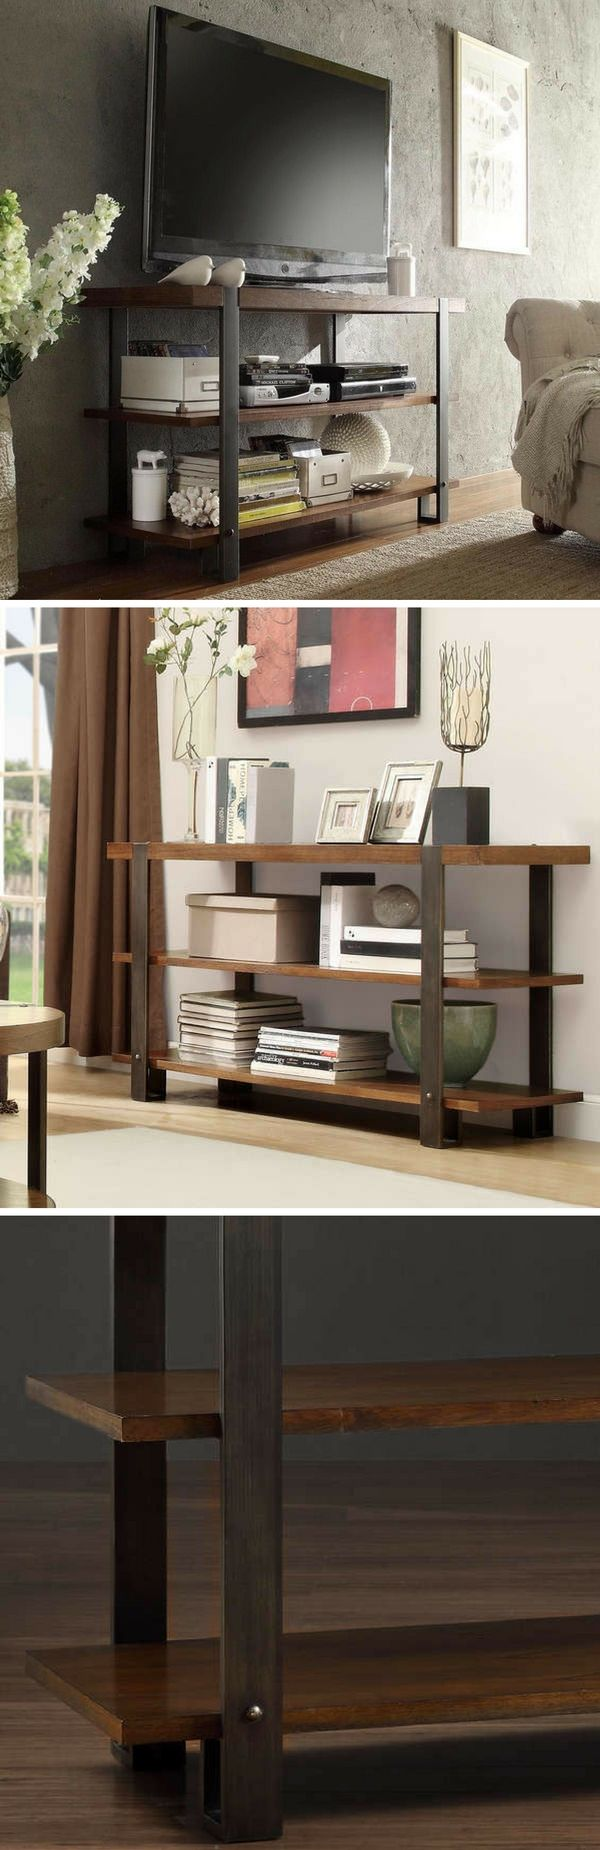 Check out the Lawson Brass & Reclaimed Wood TV Stand @istandarddesign